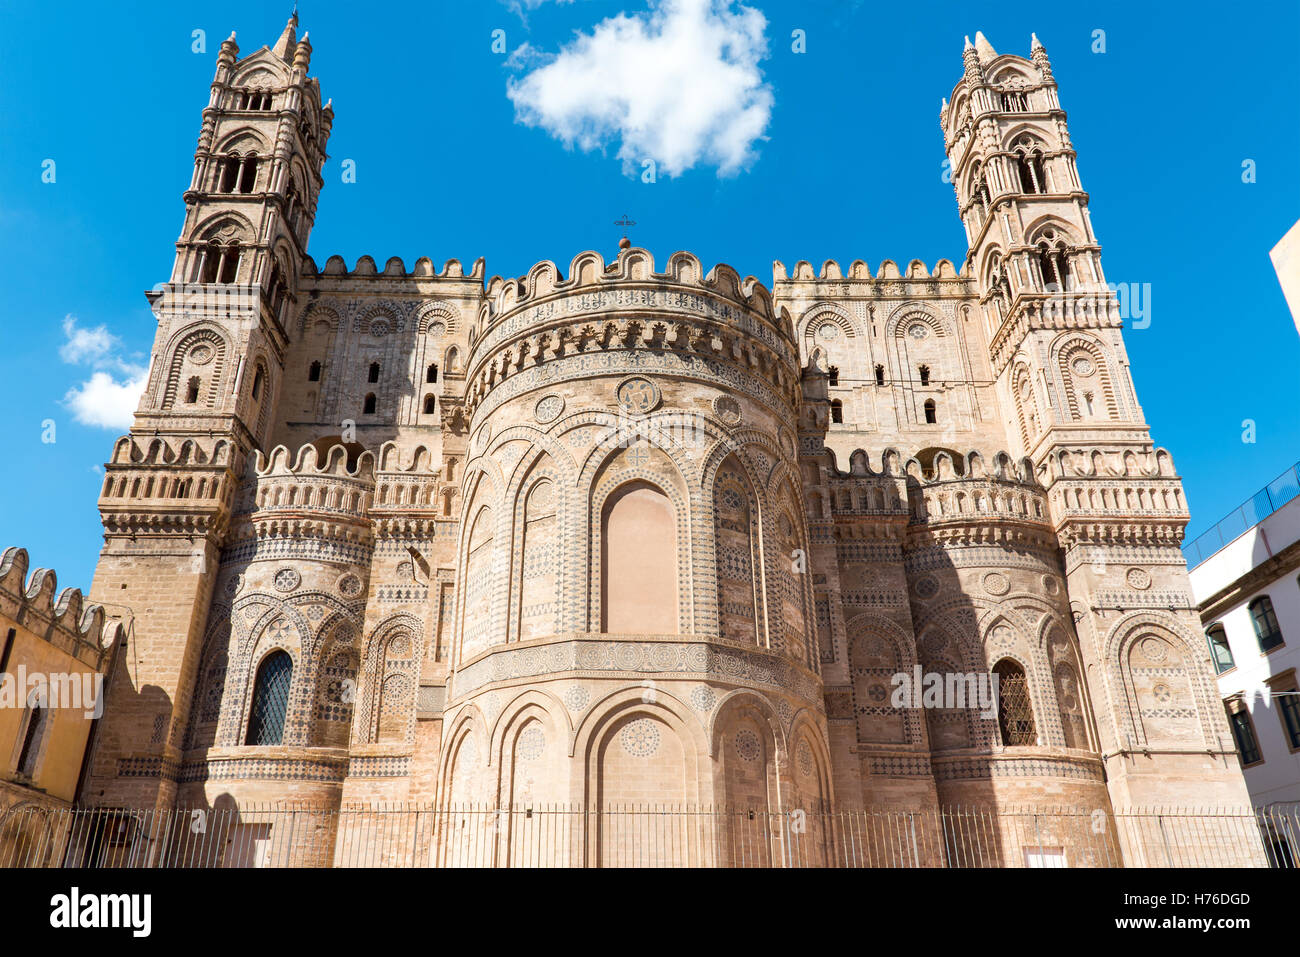 Backside of the huge cathedral in Palermo, Sicily - Stock Image